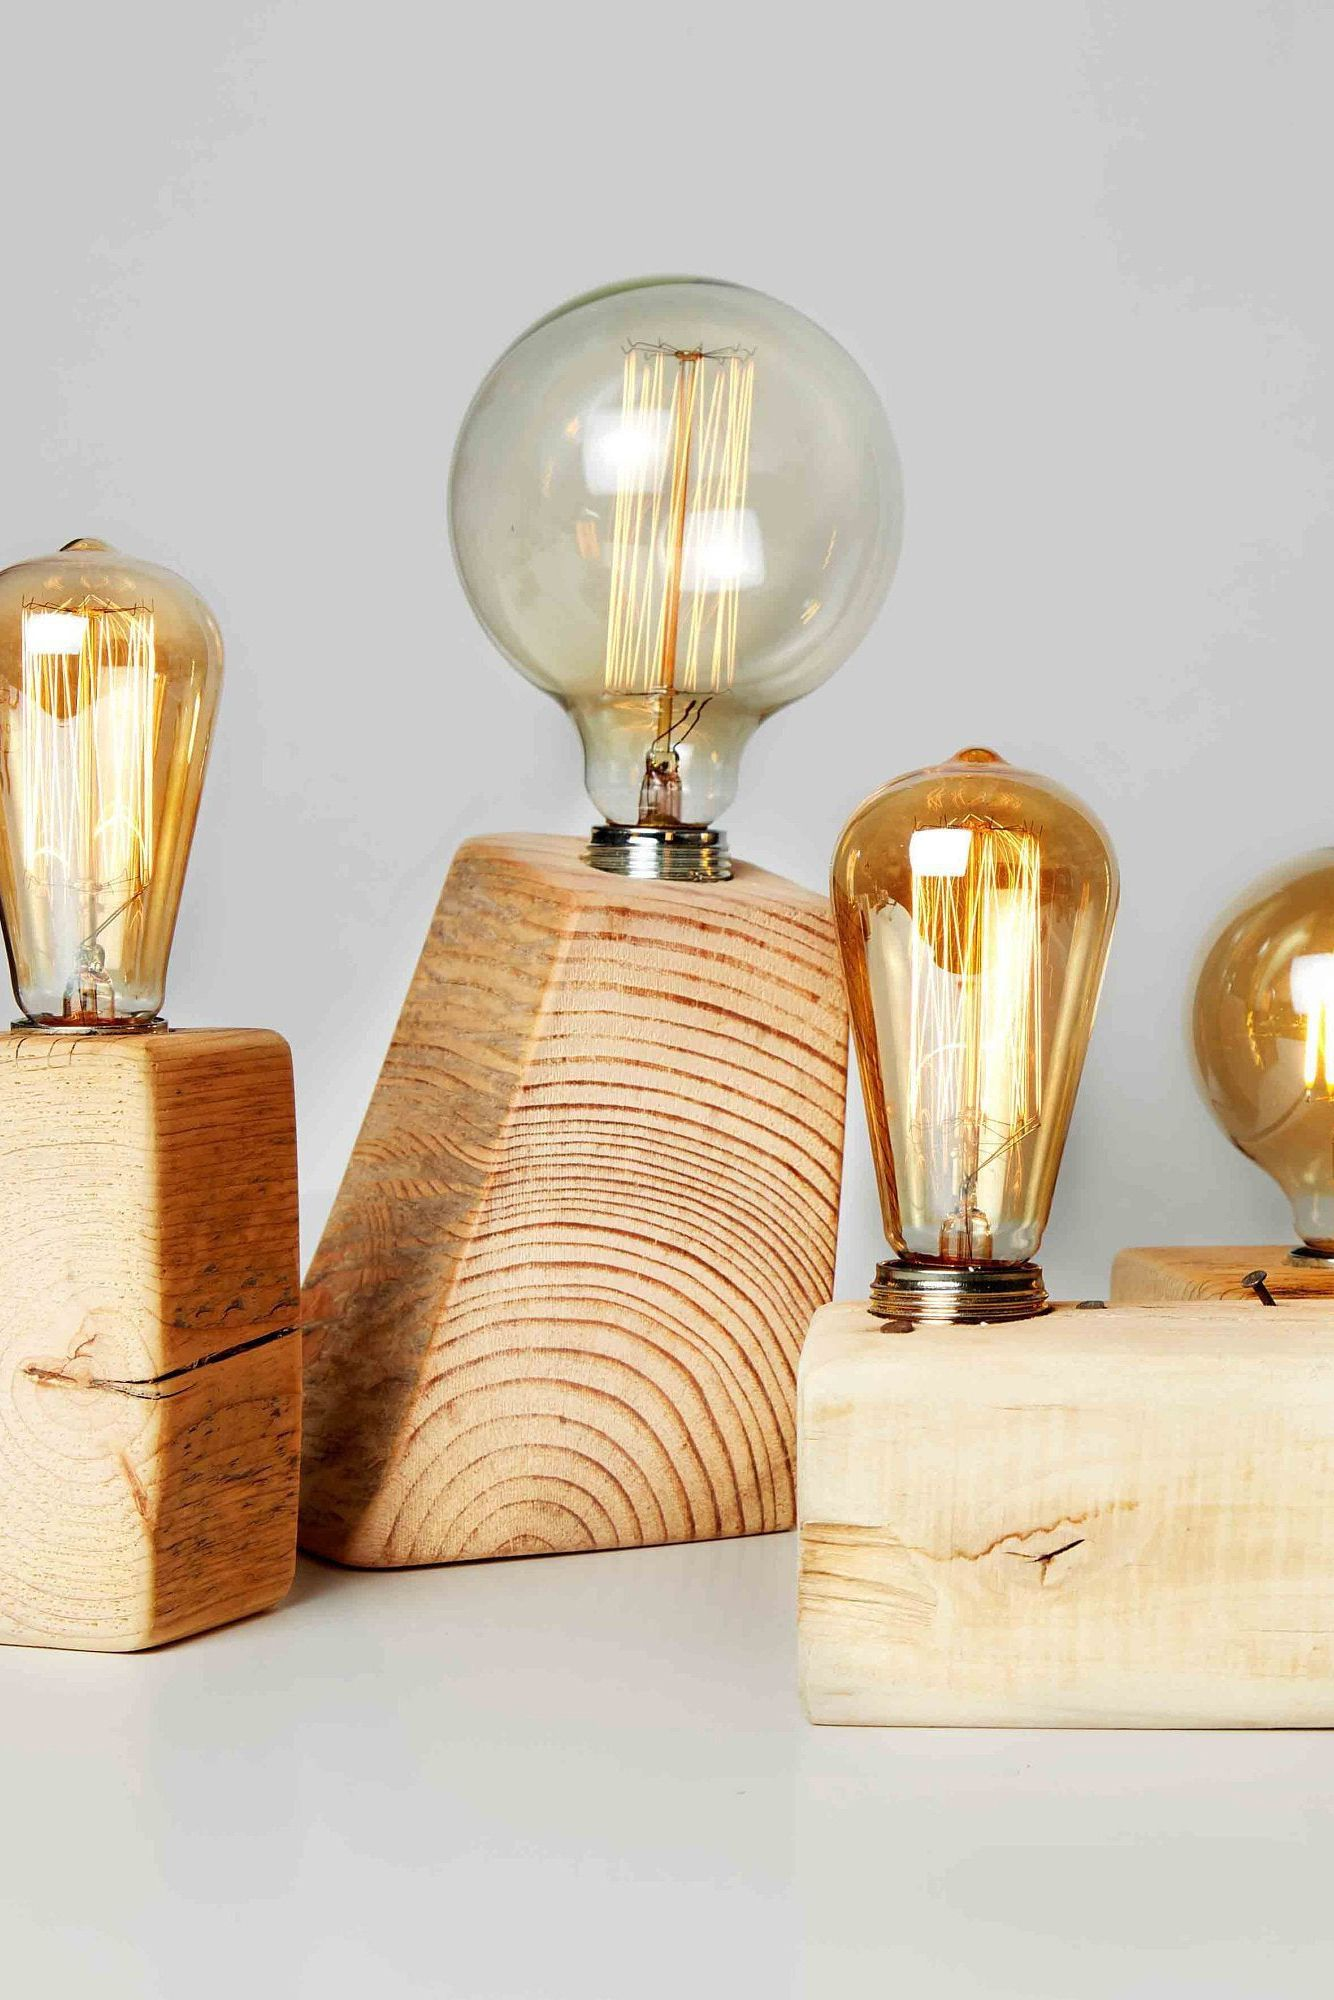 Reclaimed Wood Edison Bulb Lamp Eco Friendly Modern Wood Lamp Rustic Farmhouse Lighting Trending Home Decor First Home Housewarming Gift Edison Bulb Lamp Bulb Wood Pendant Light